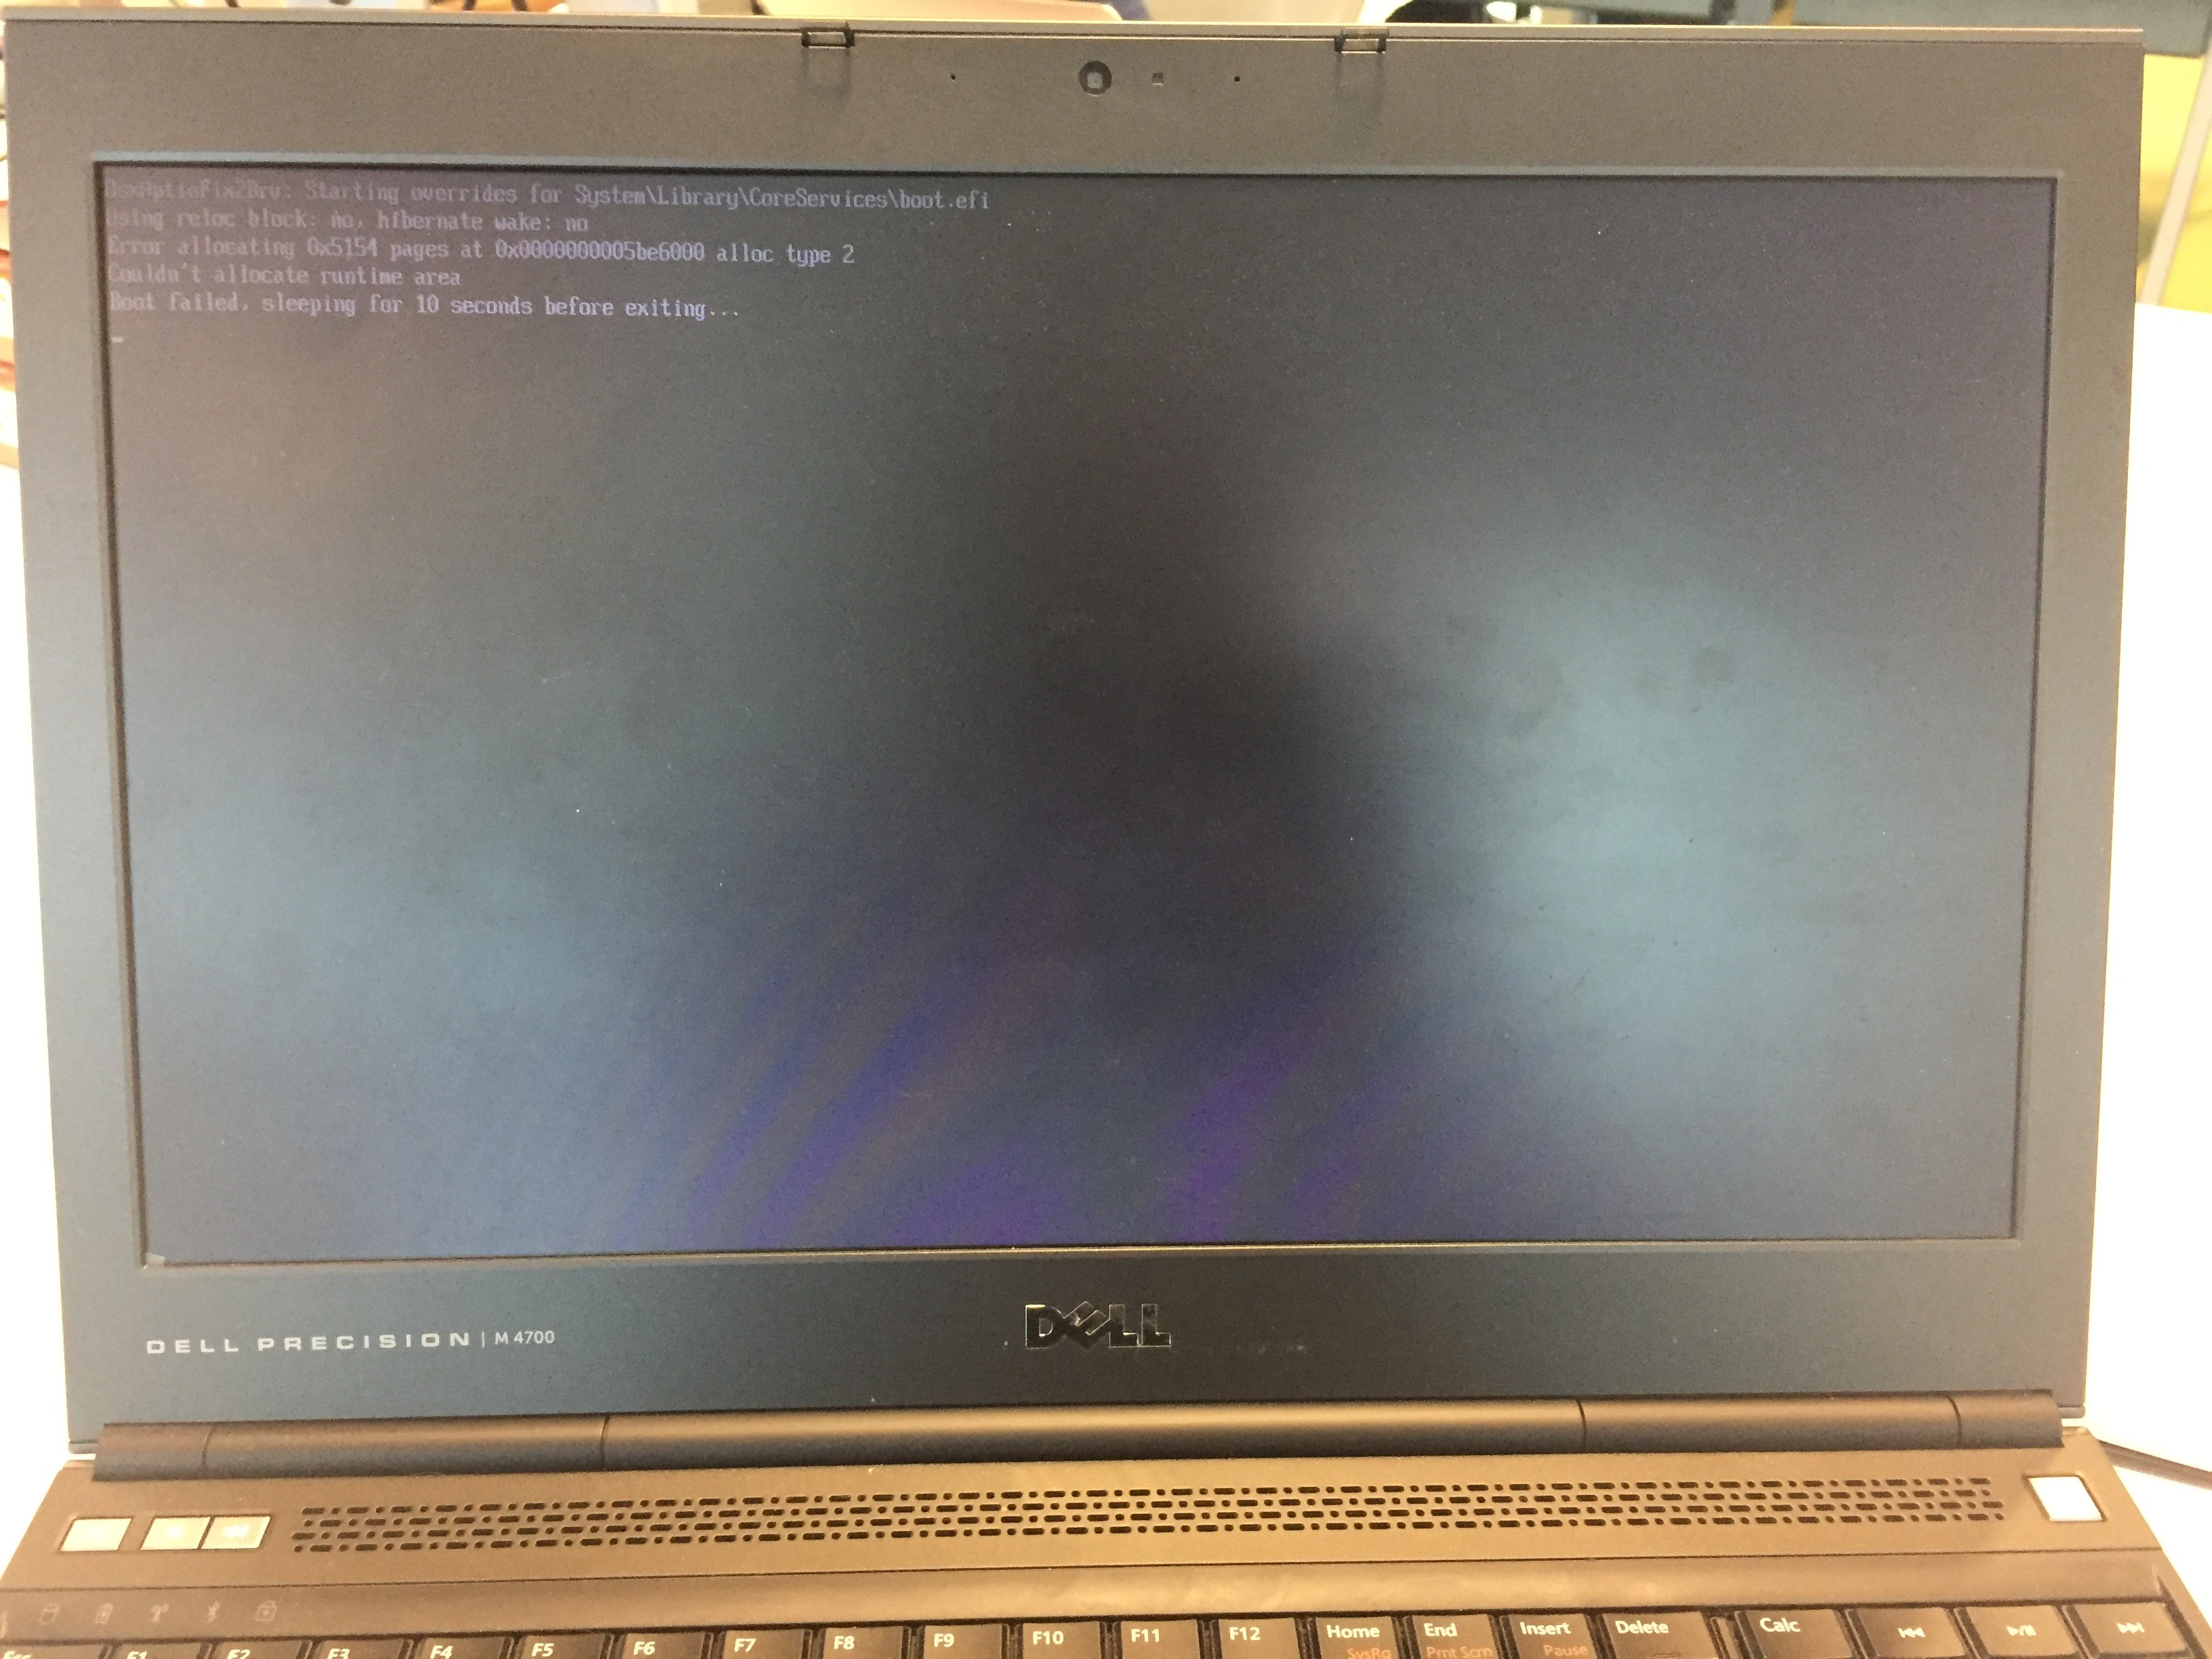 Installing on Dell Precision M4700, bunch of issues | Page 2